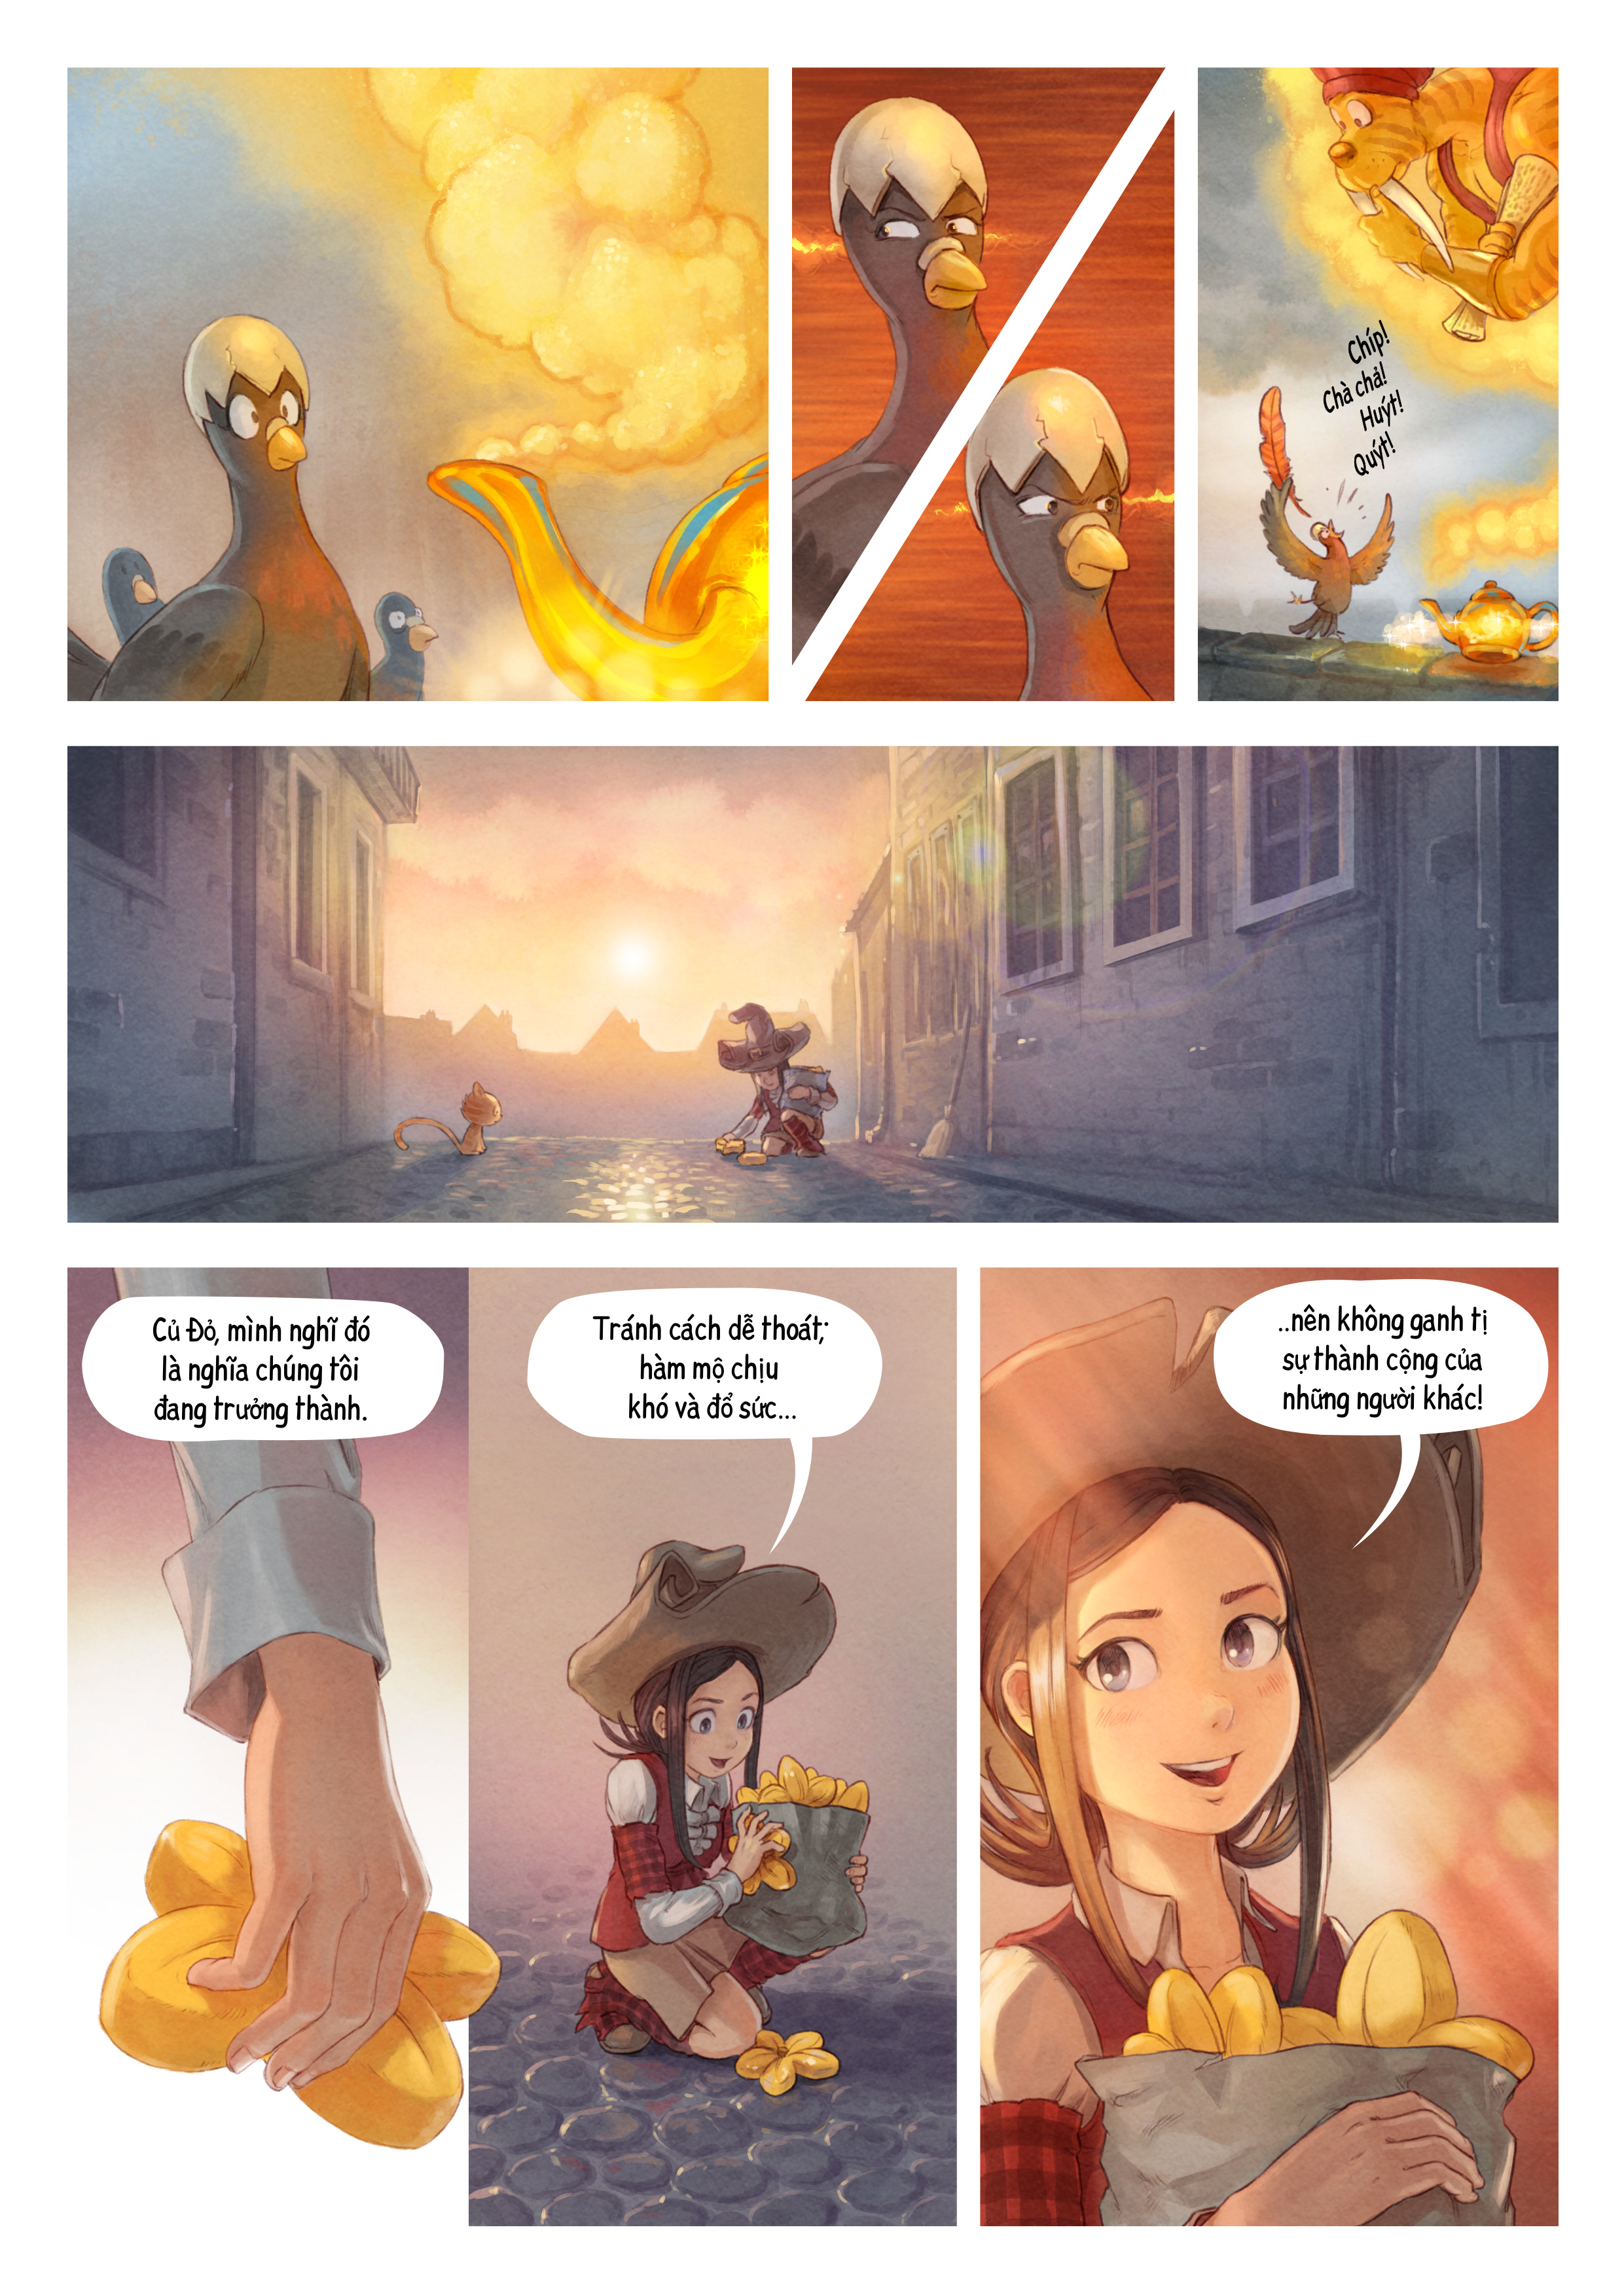 A webcomic page of Pepper&Carrot, Tập 23 [vi], trang 6